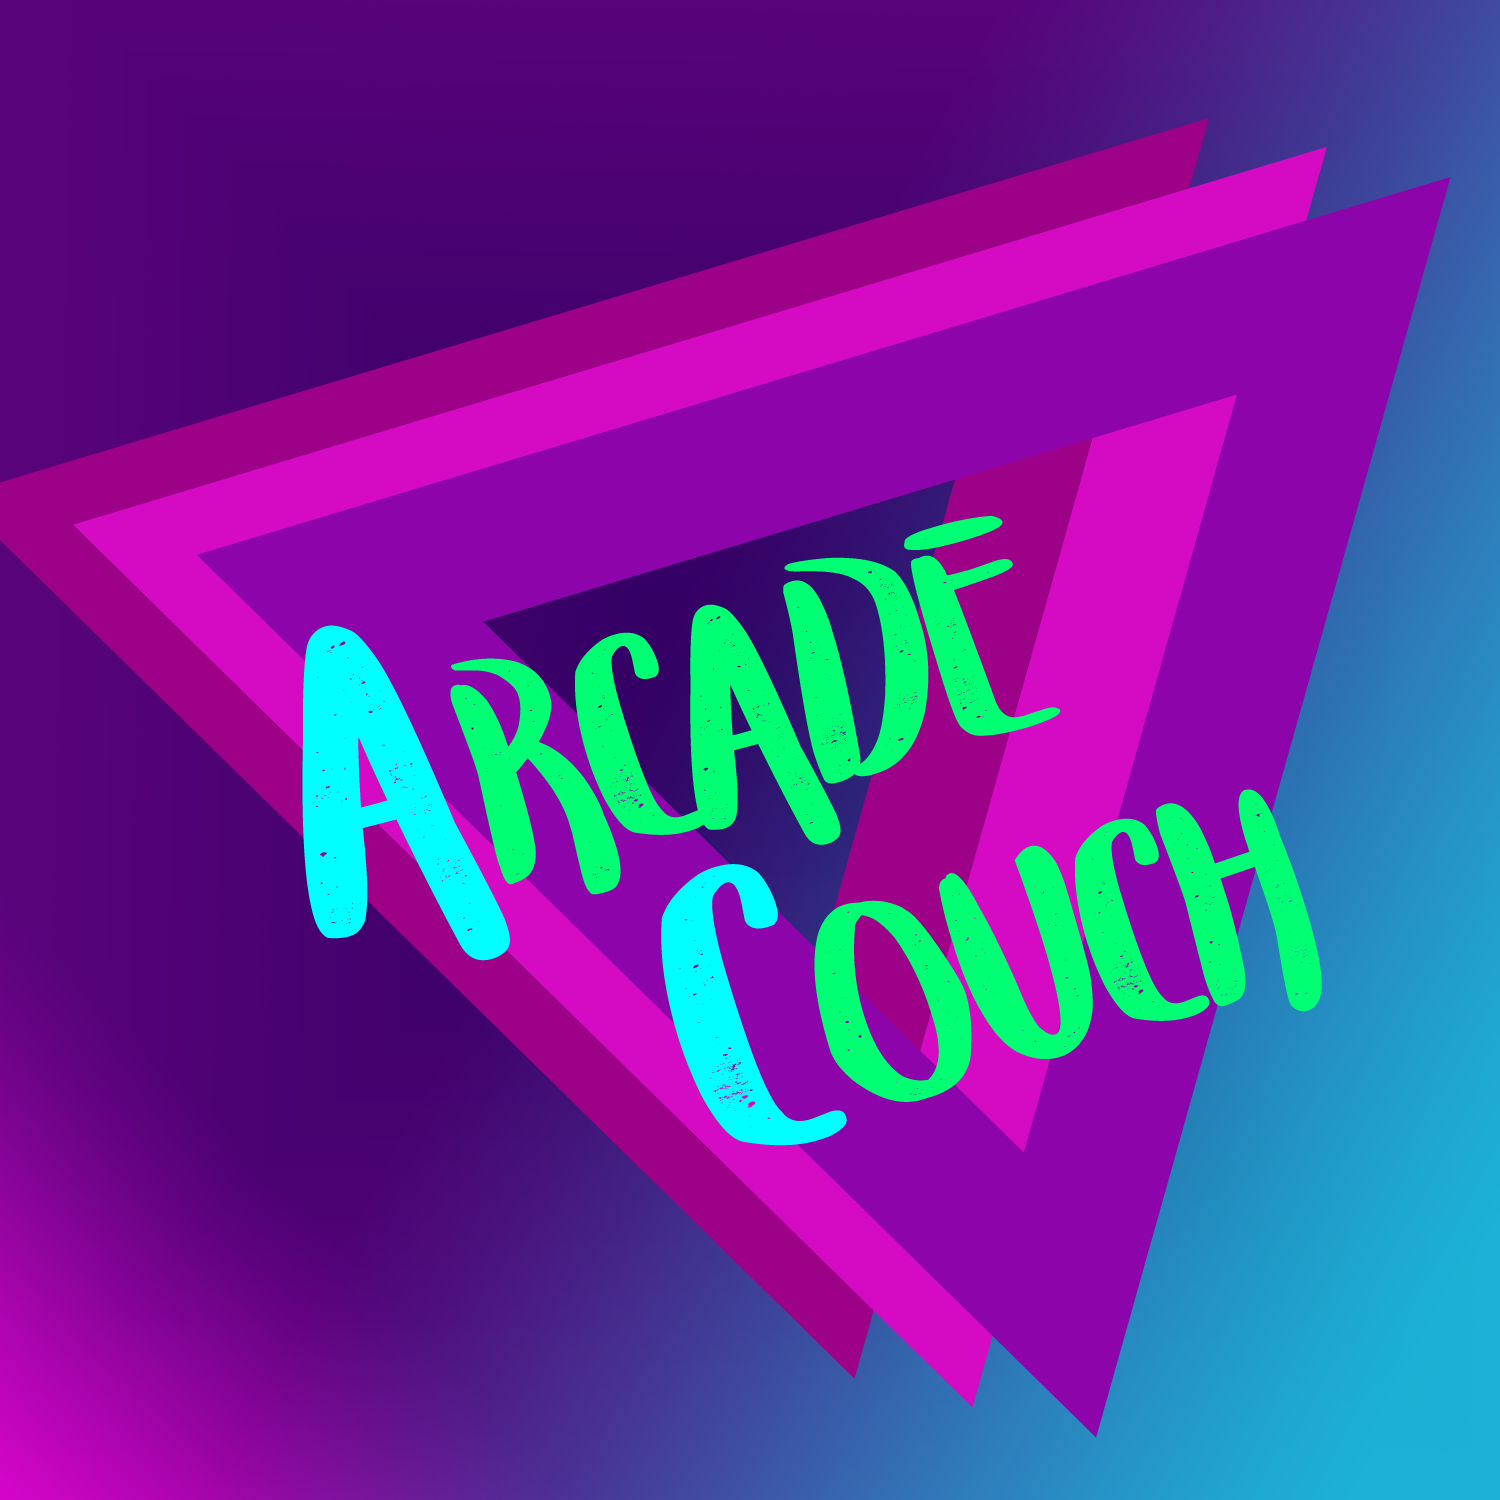 Arcade Couch Podcast Artwork.png